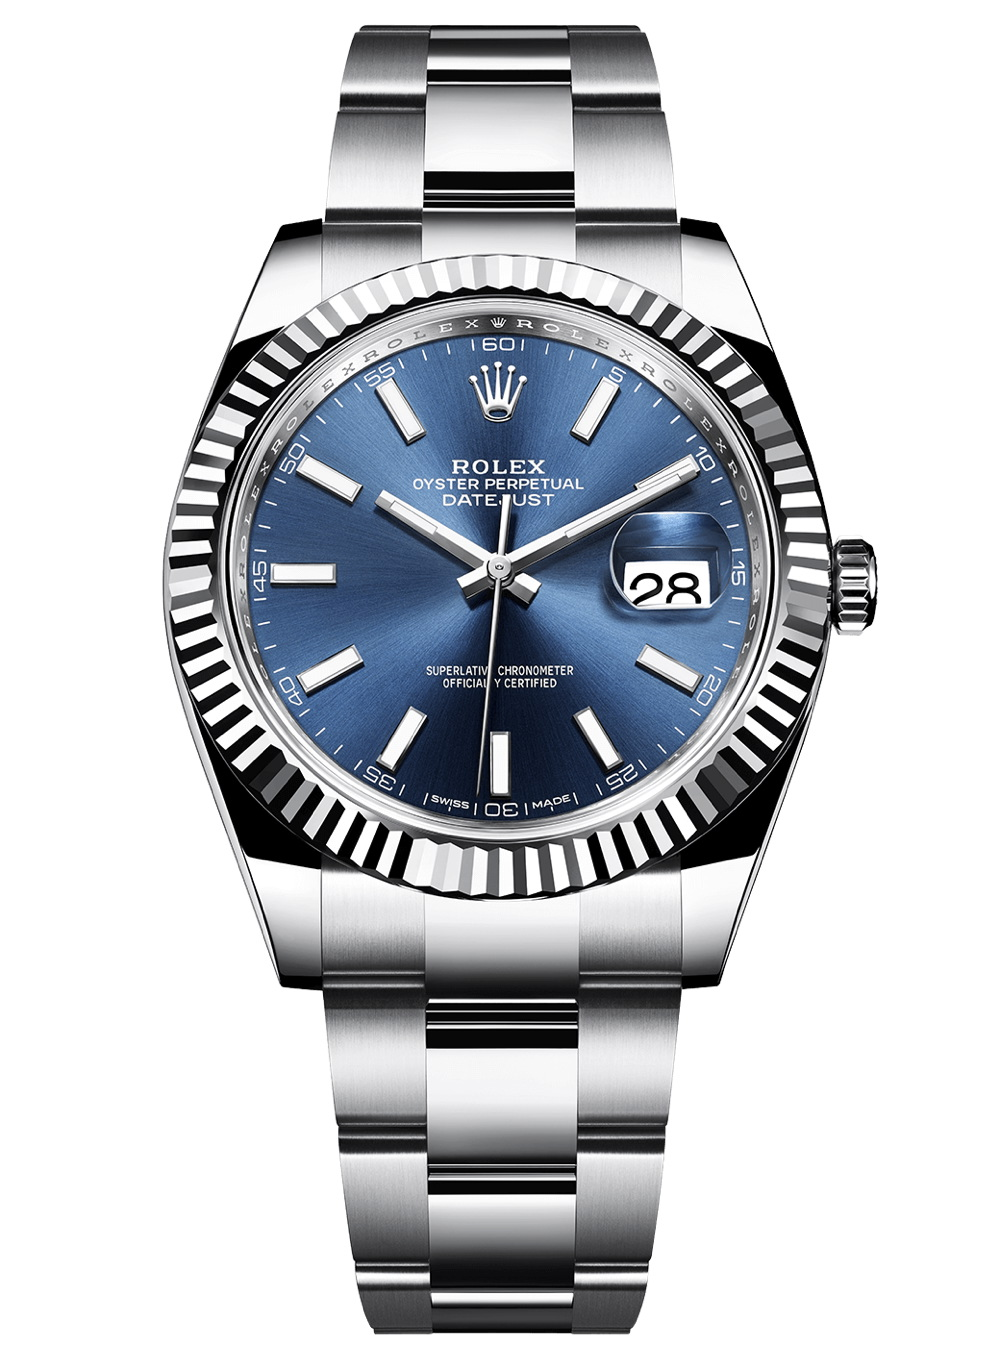 RPR_datejust